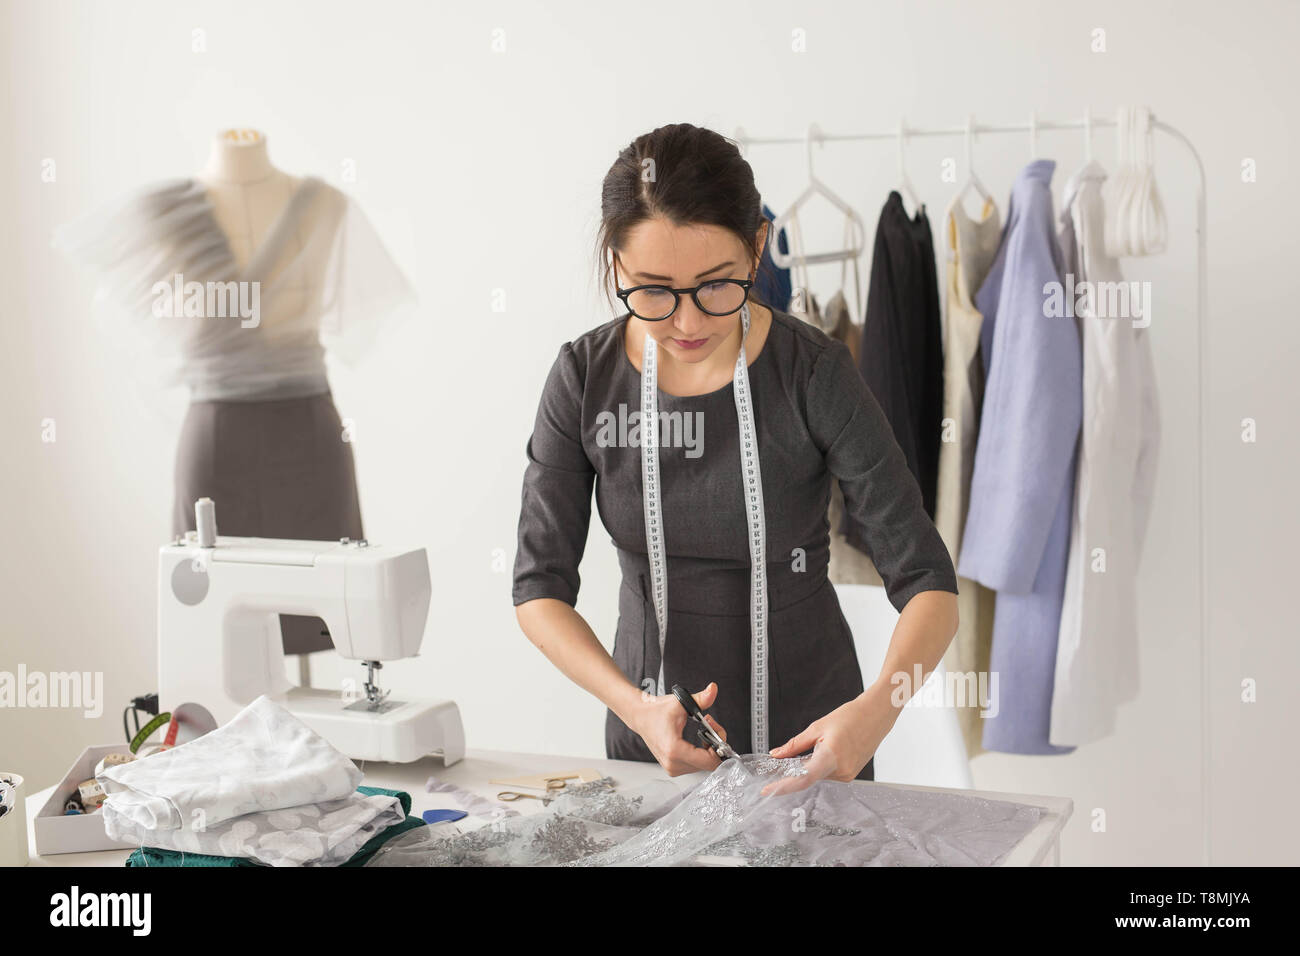 Dressmaker Fashion Designer And Tailor Concept Young Woman Designer Cuts Light Fabric Stock Photo Alamy